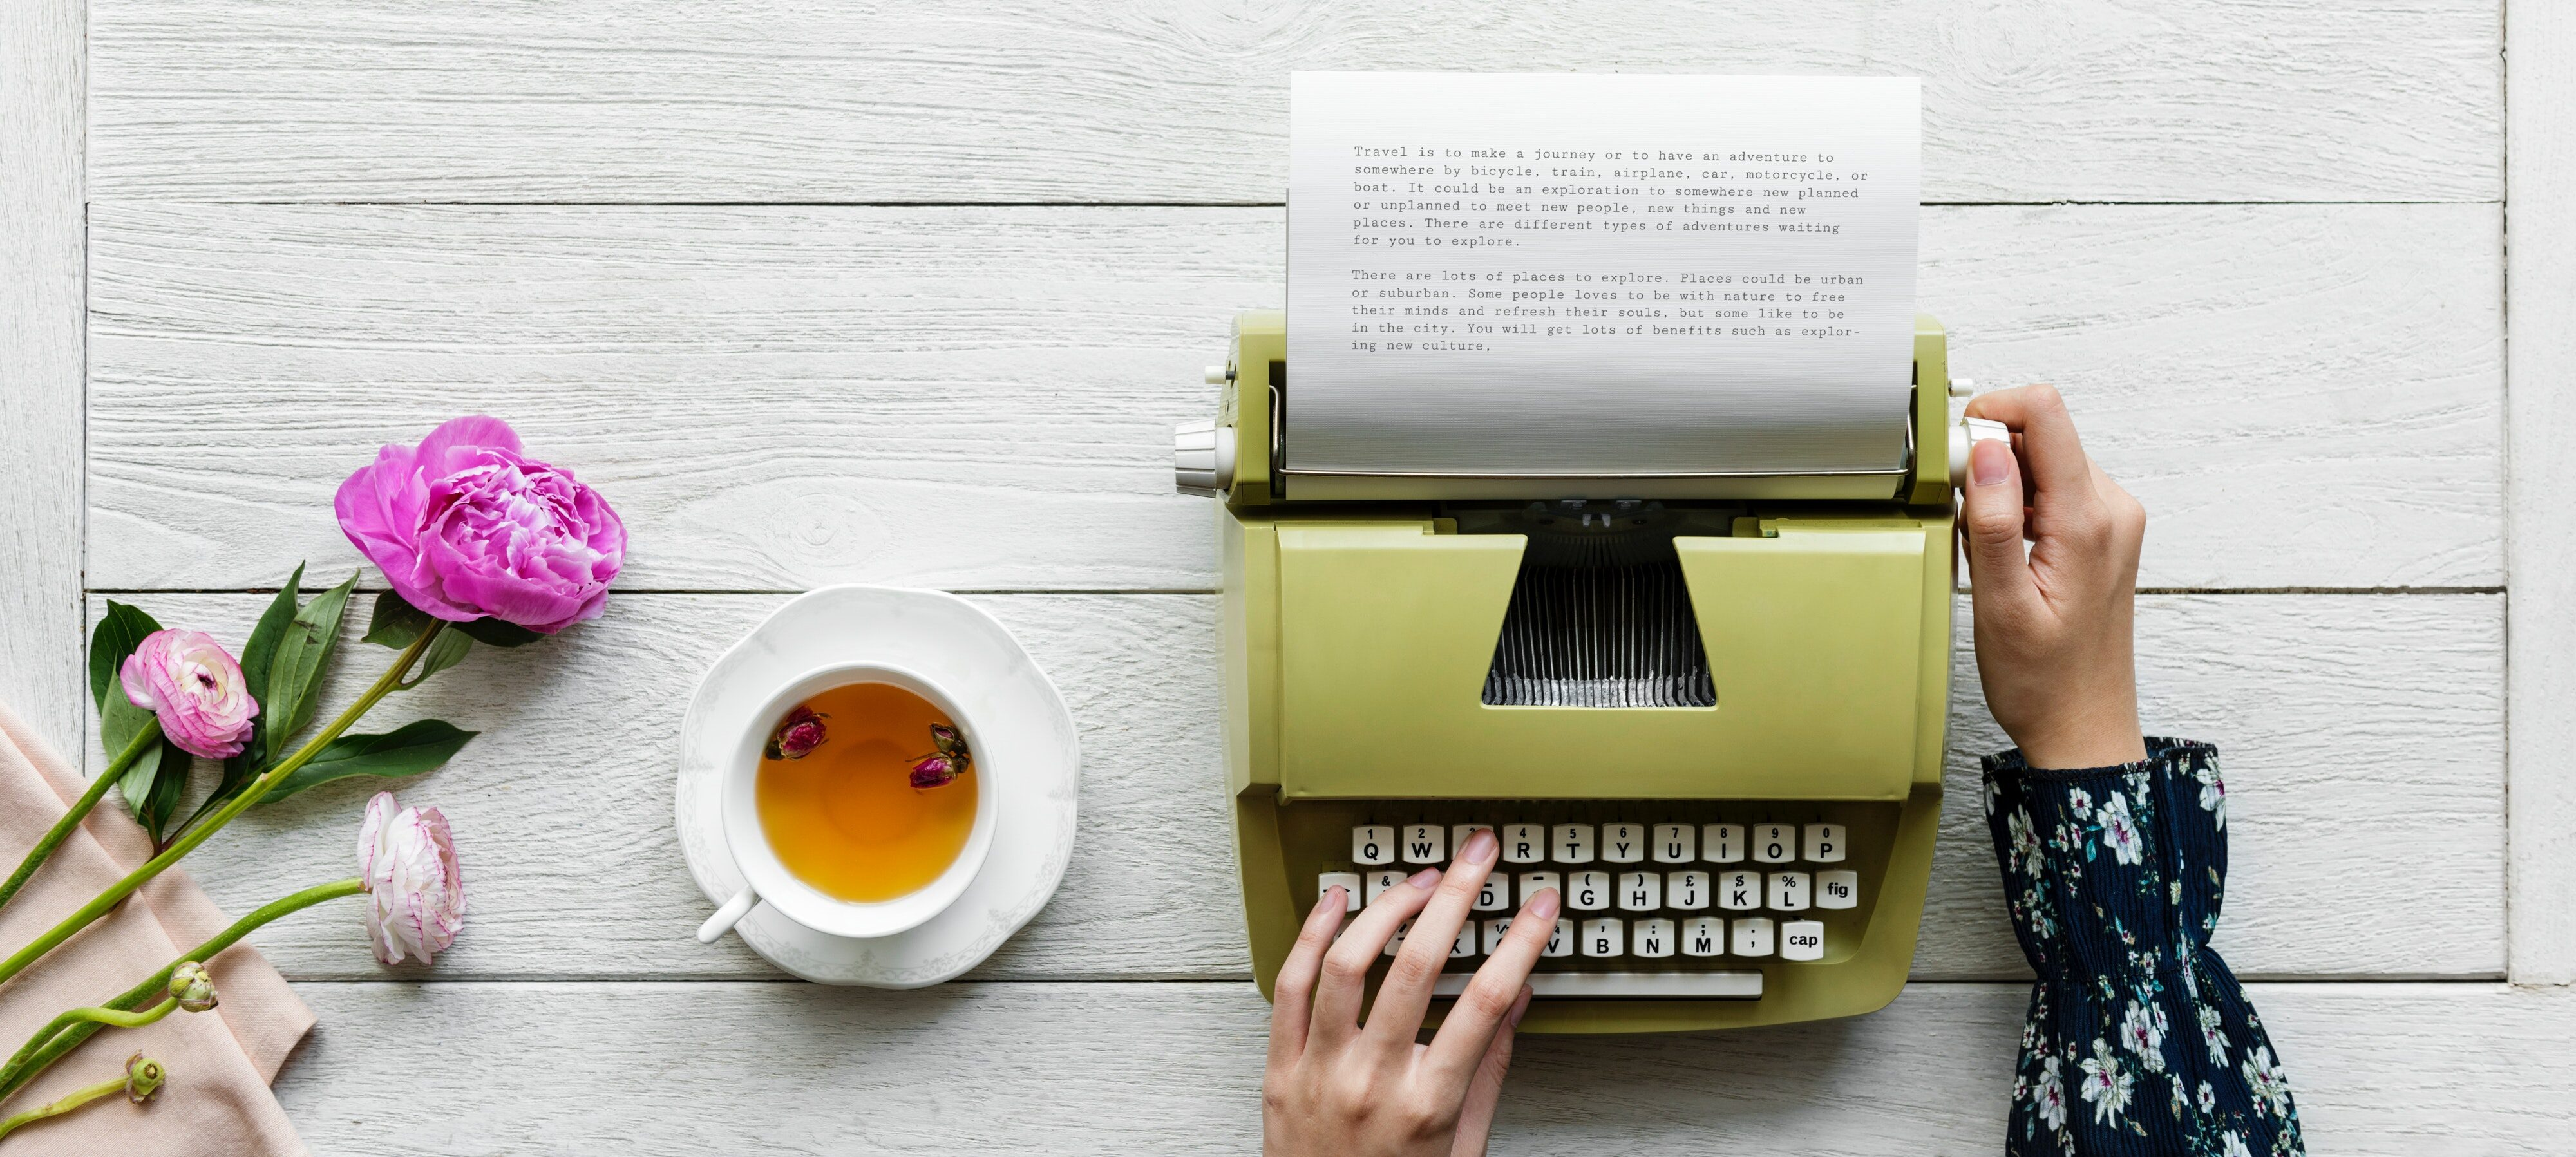 Flowers, a cup of herbal tea and hands on a green typewriter against a white background